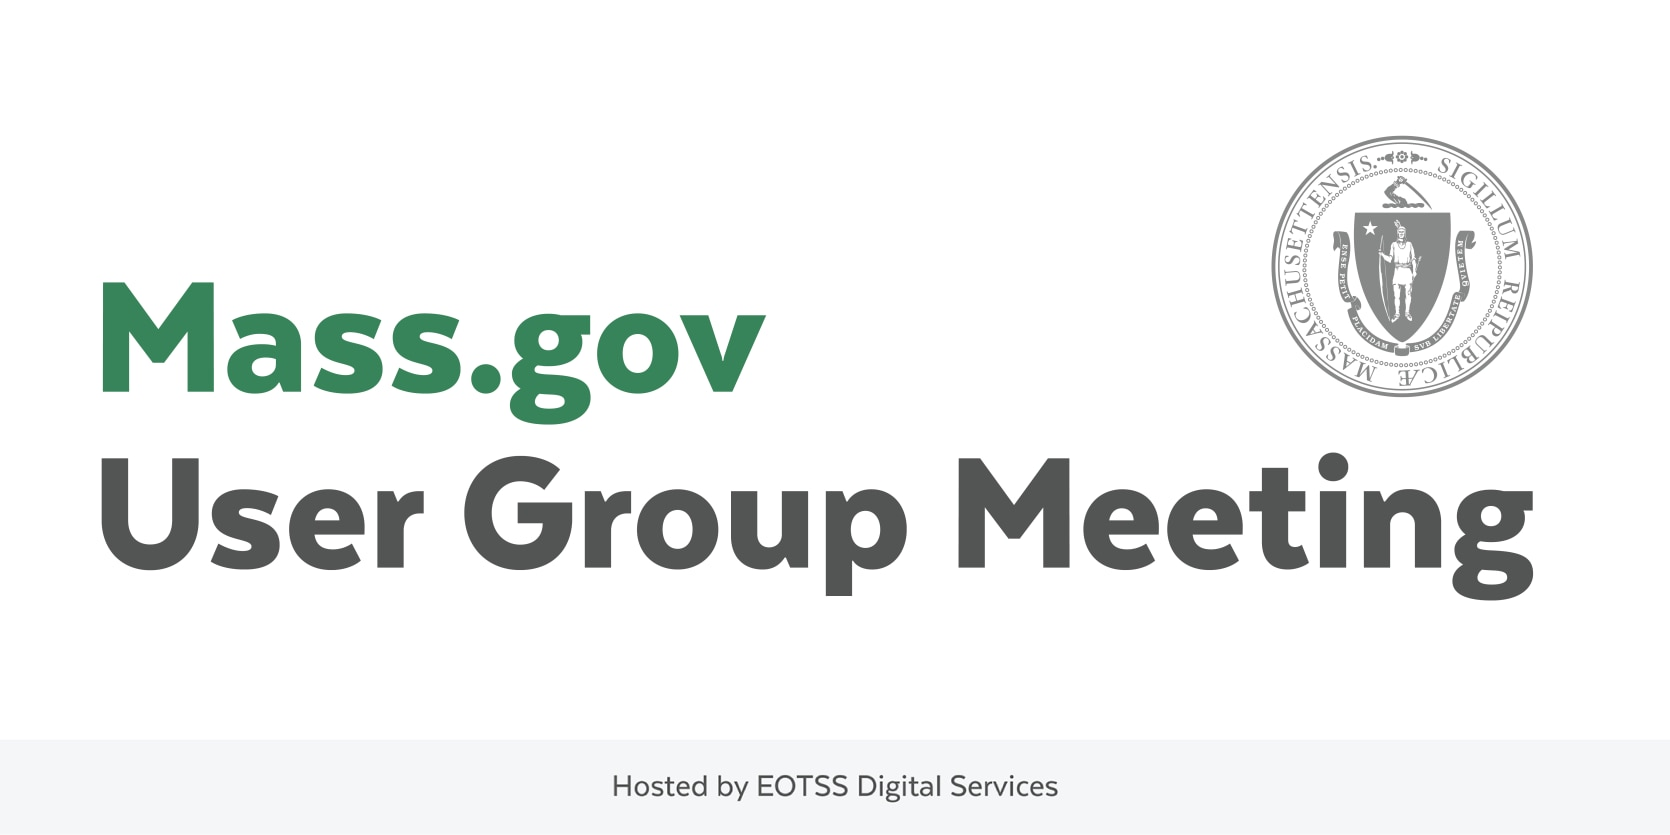 Mass.gov User Group Meeting with State Seal and hosted by Digital Services